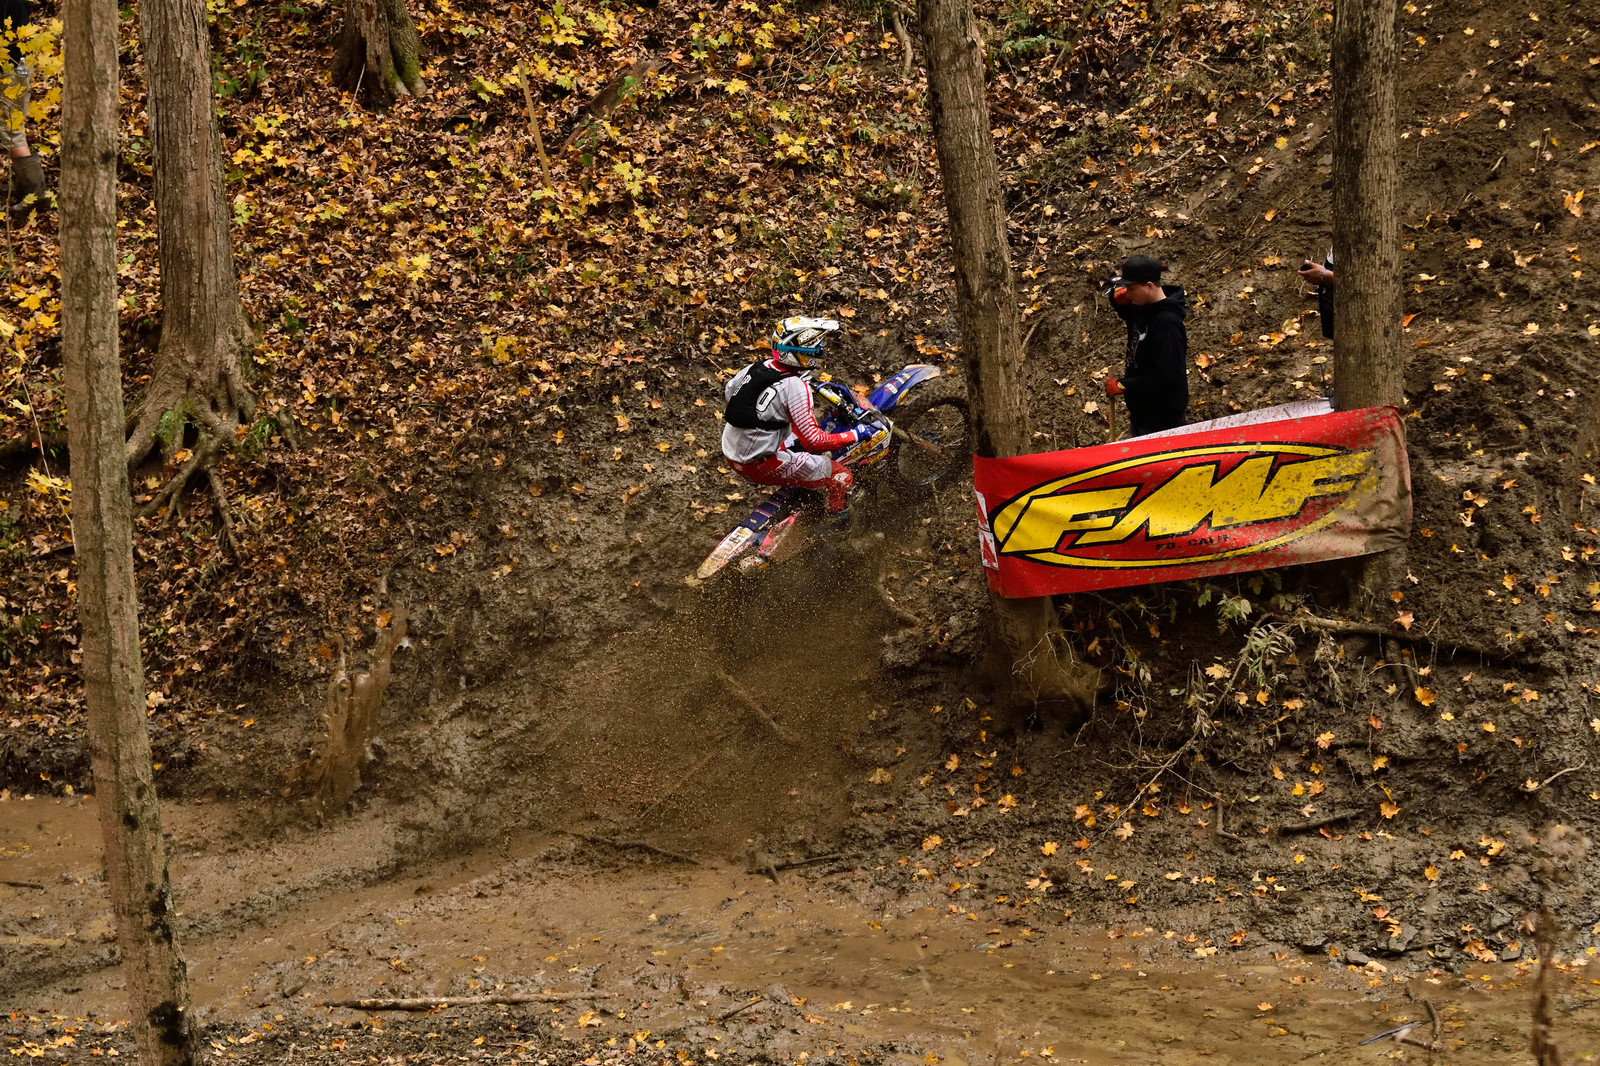 Gnarly Hills - Ironman GNCC - Motocross Pictures - Vital MX